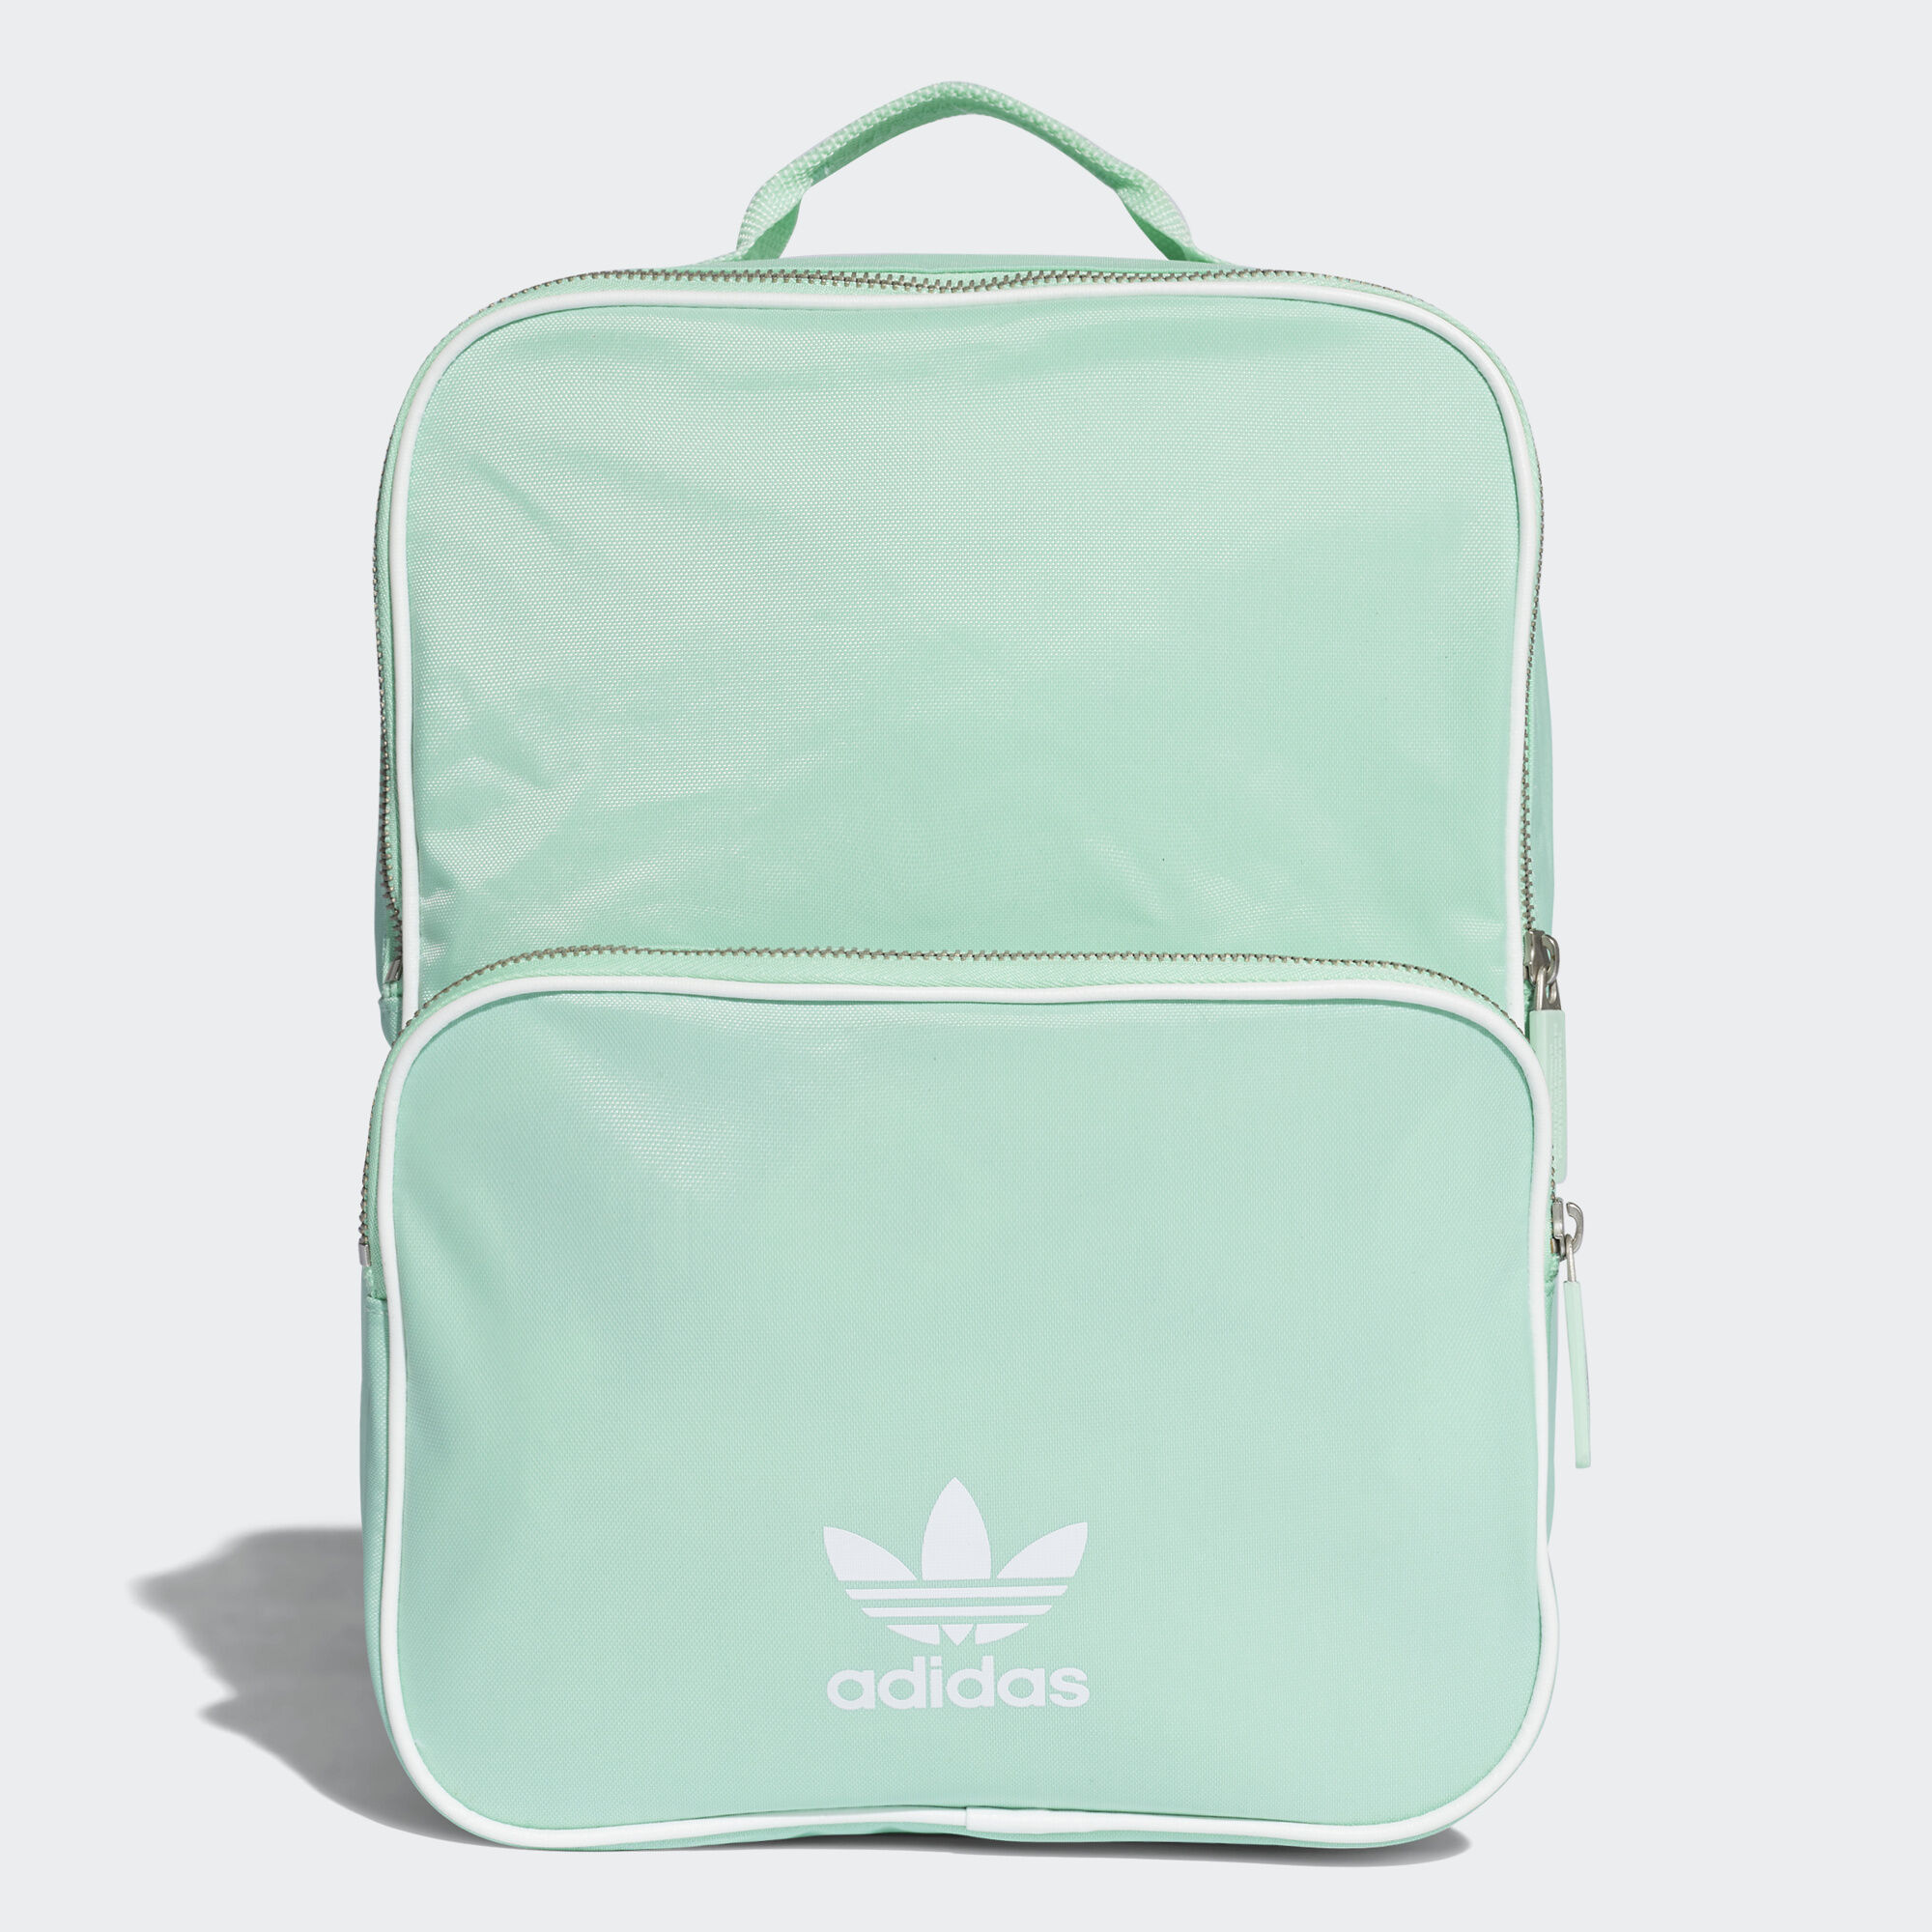 adidas Classic Backpack Medium - Turquoise   adidas Asia Middle East 8d6f93f398